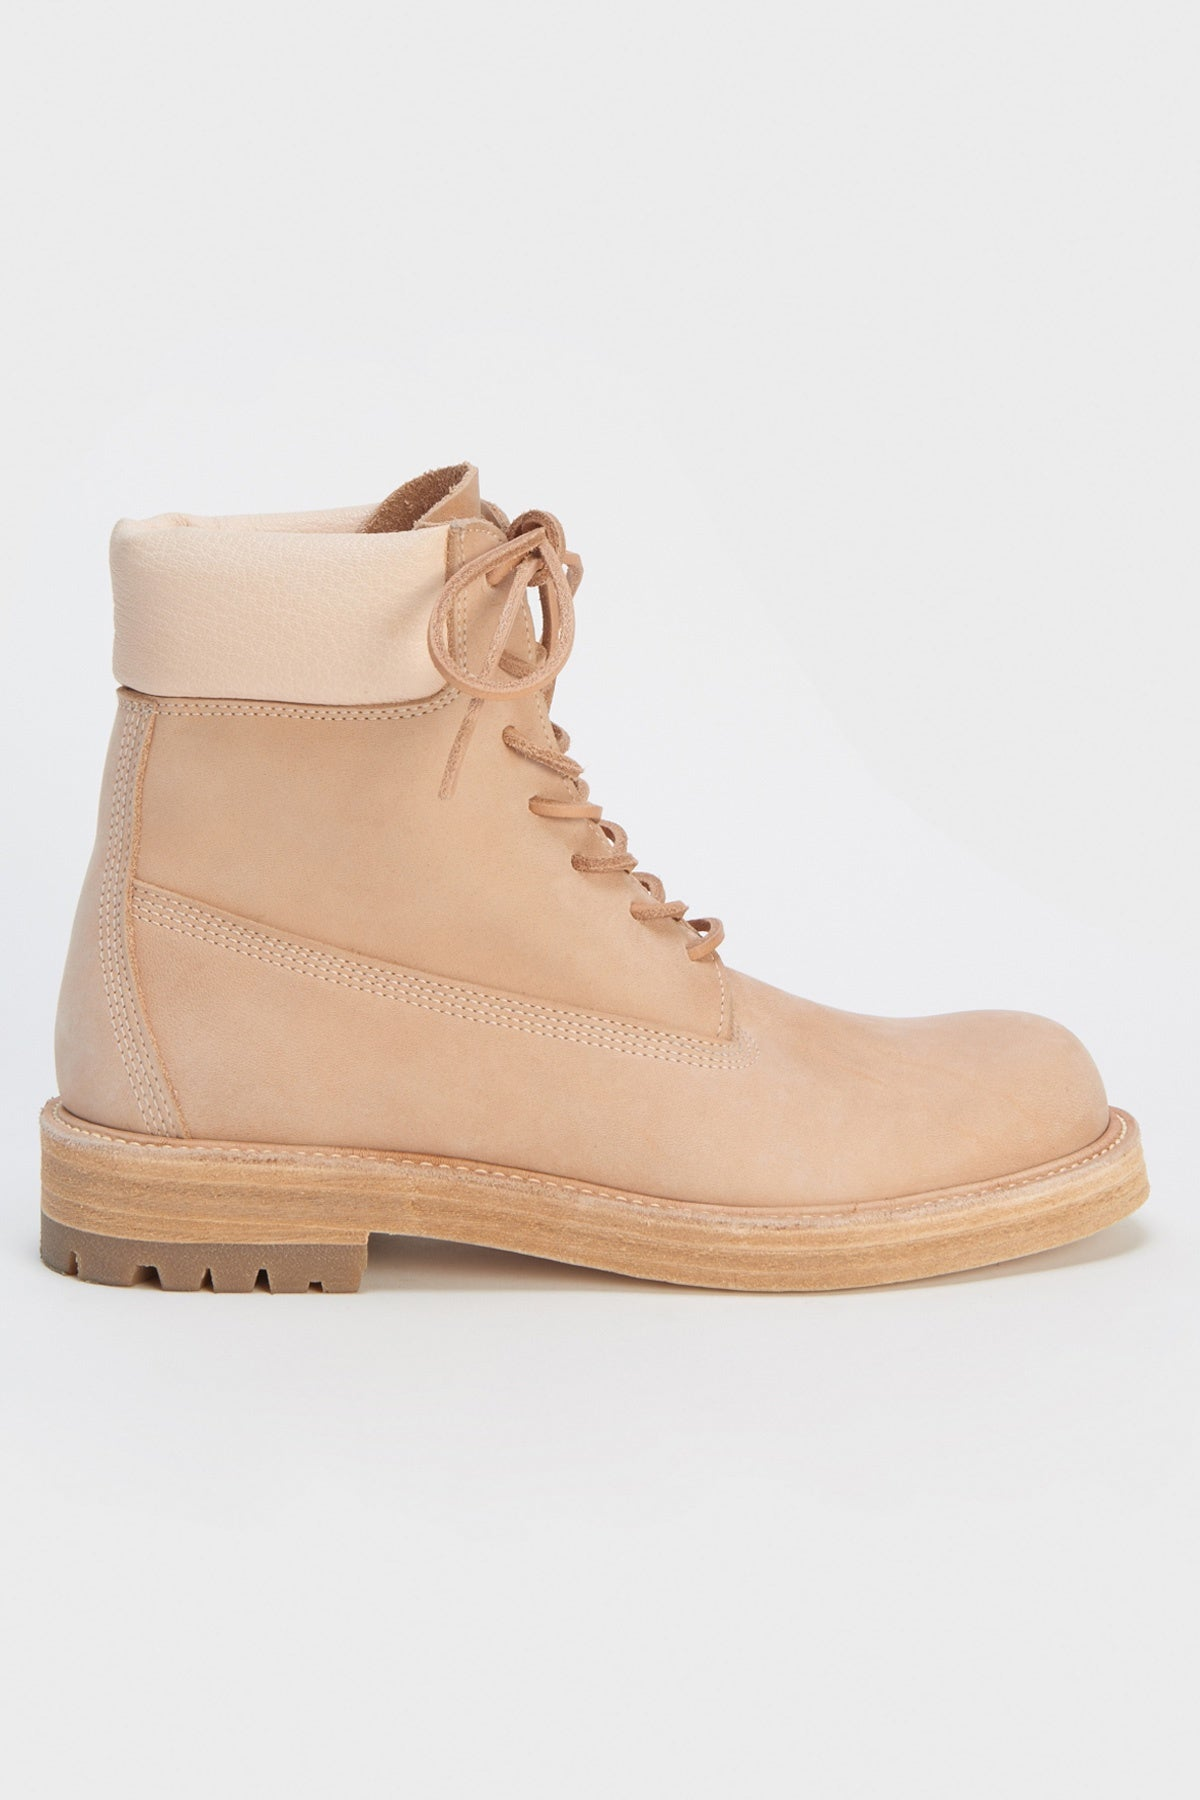 Hender Scheme - MIP-14 - Natural - Canoe Club